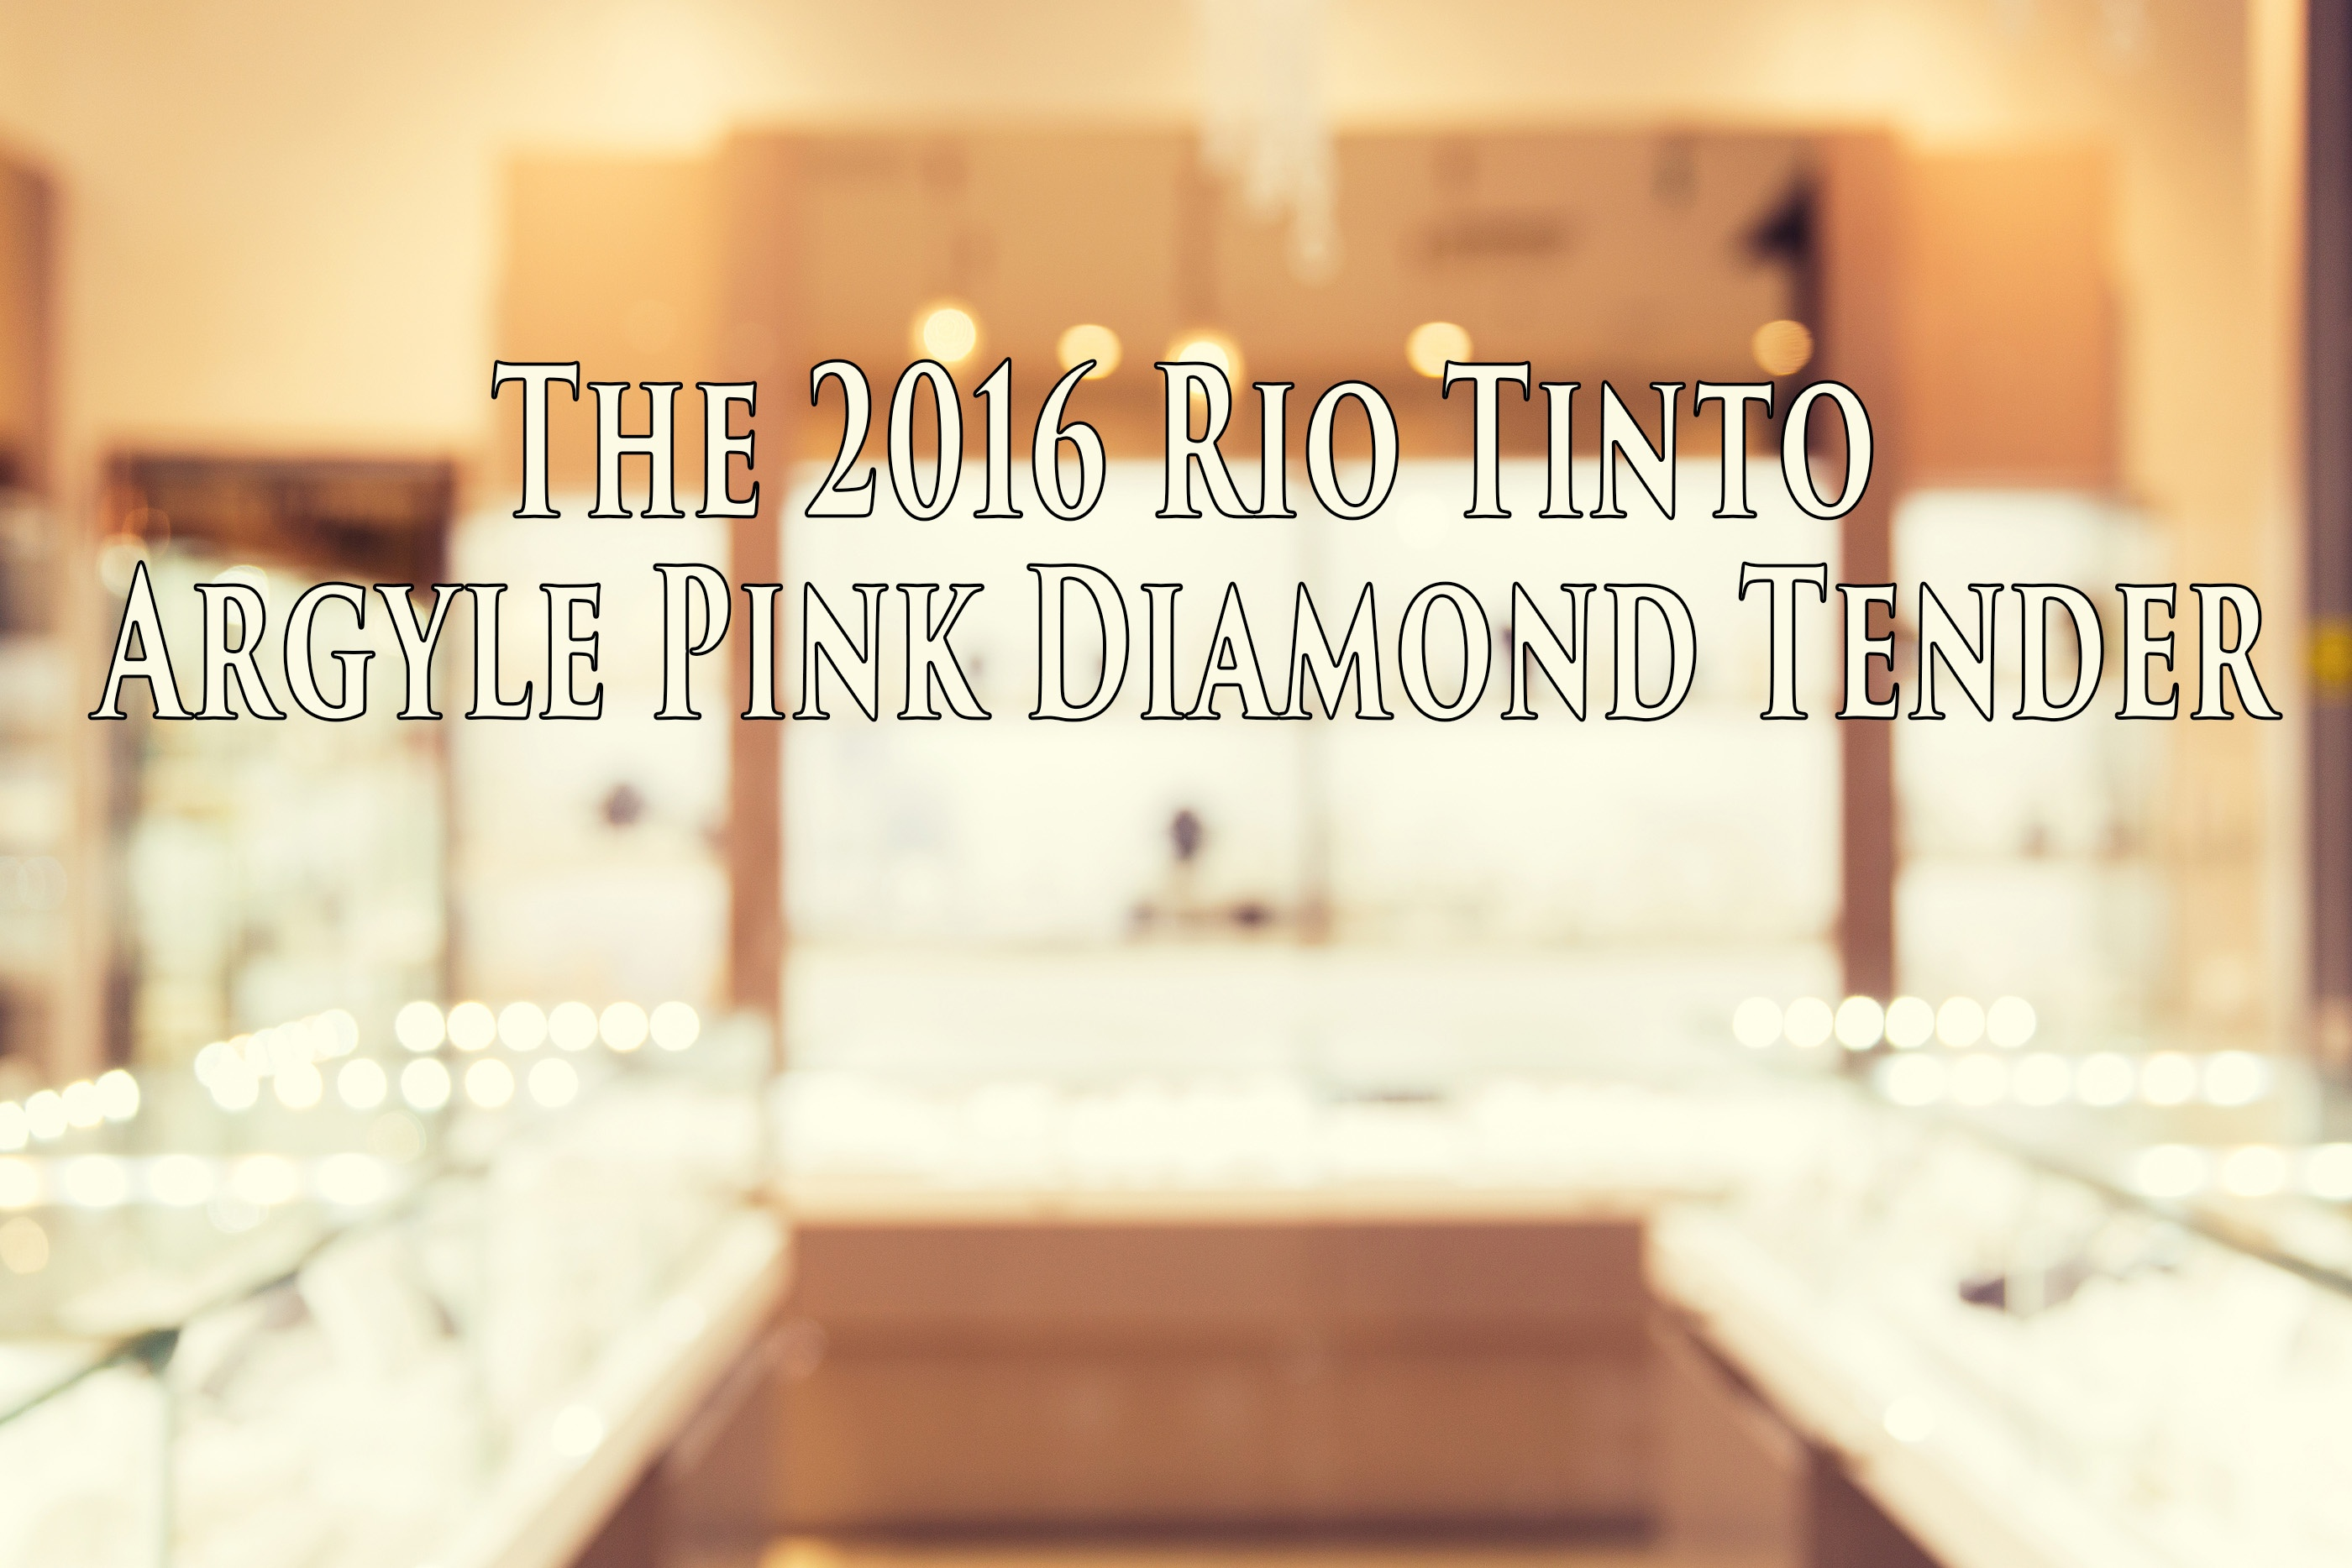 2016_argyle_pink_diamond_tender-1.jpg